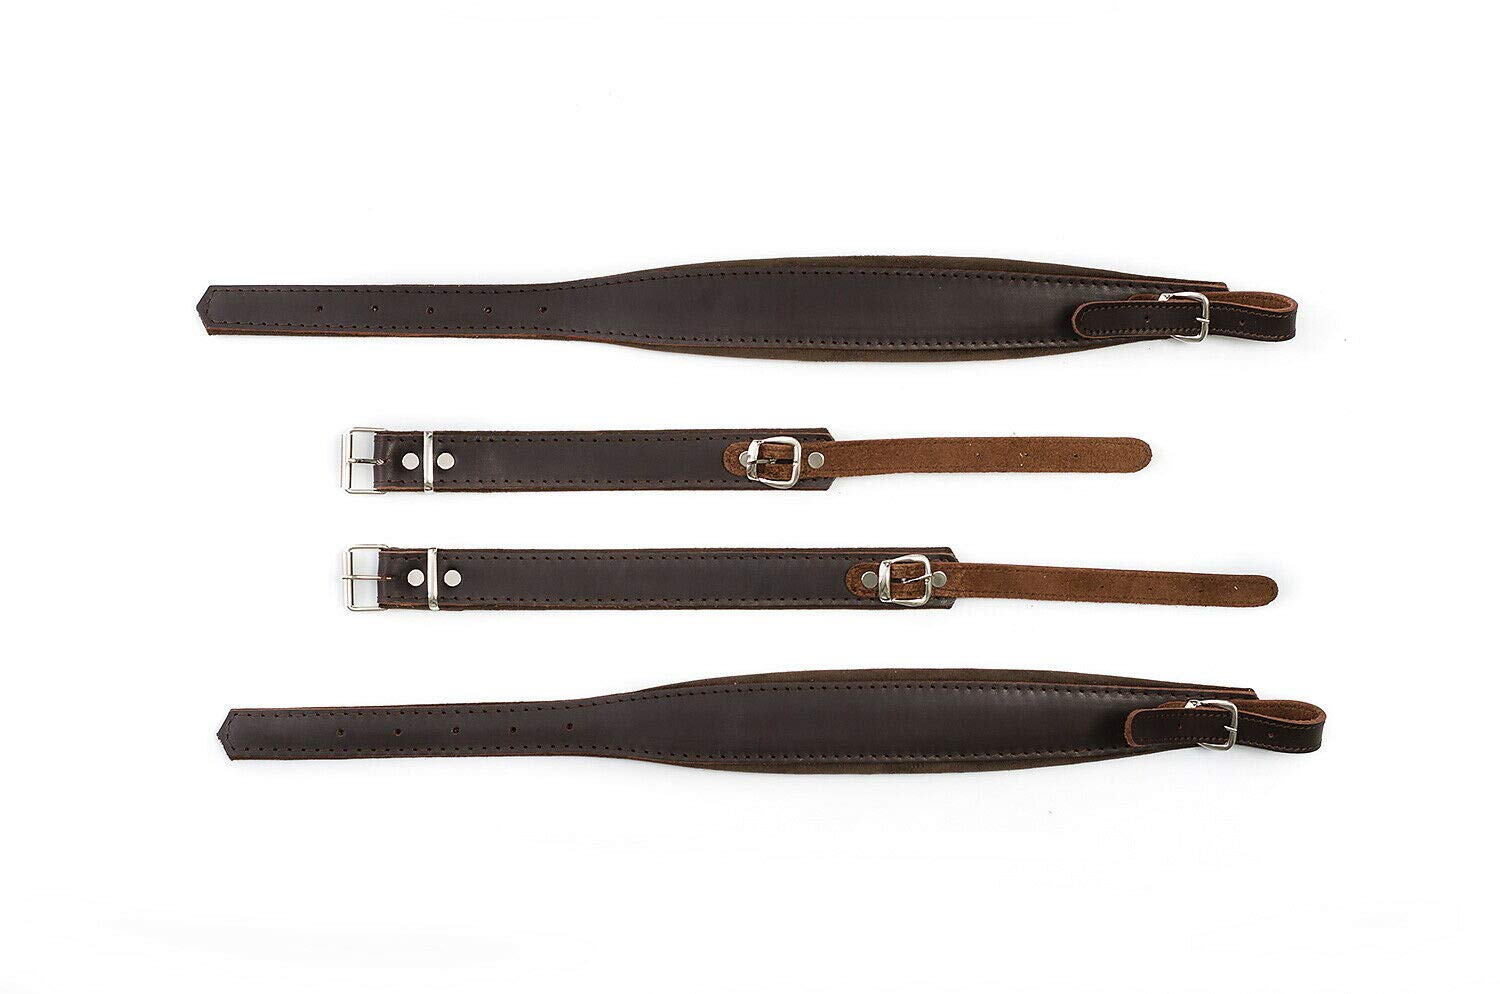 New Real Leather Quality Shoulder Straps 60,48,40 Bass Accordion Belts Correas by Used musical instruments